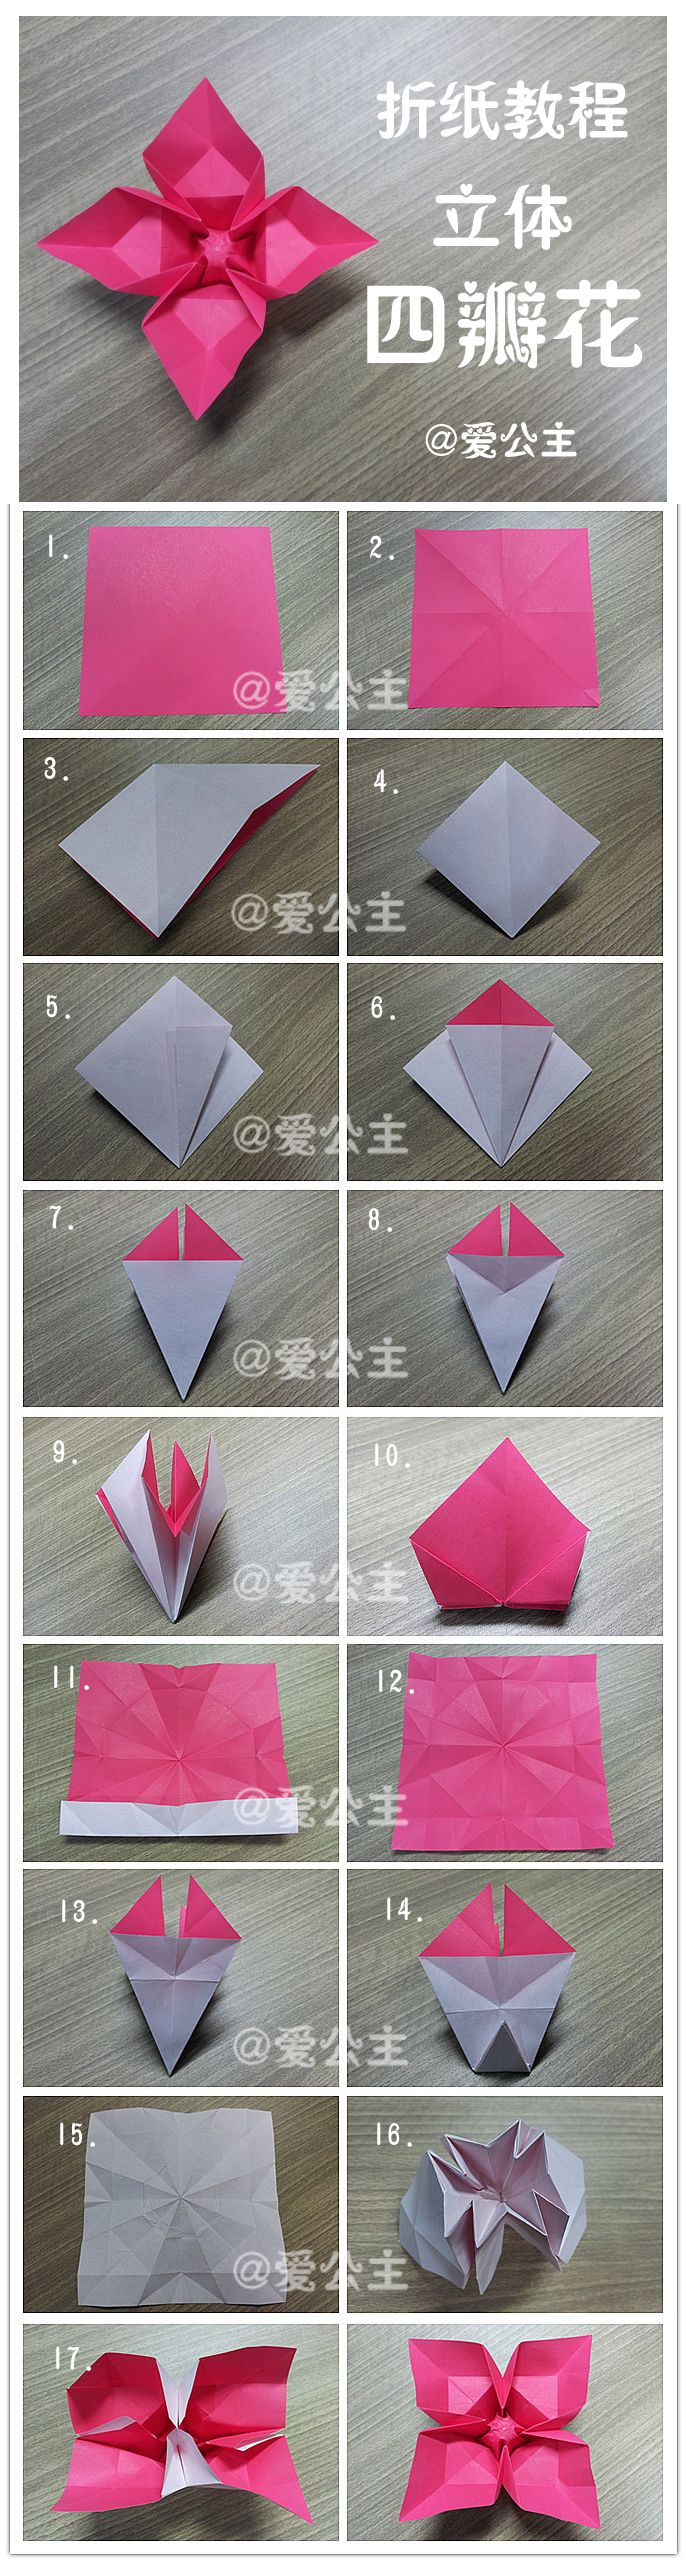 31 Best Origami Images On Pinterest Paper Flowers Origami Paper